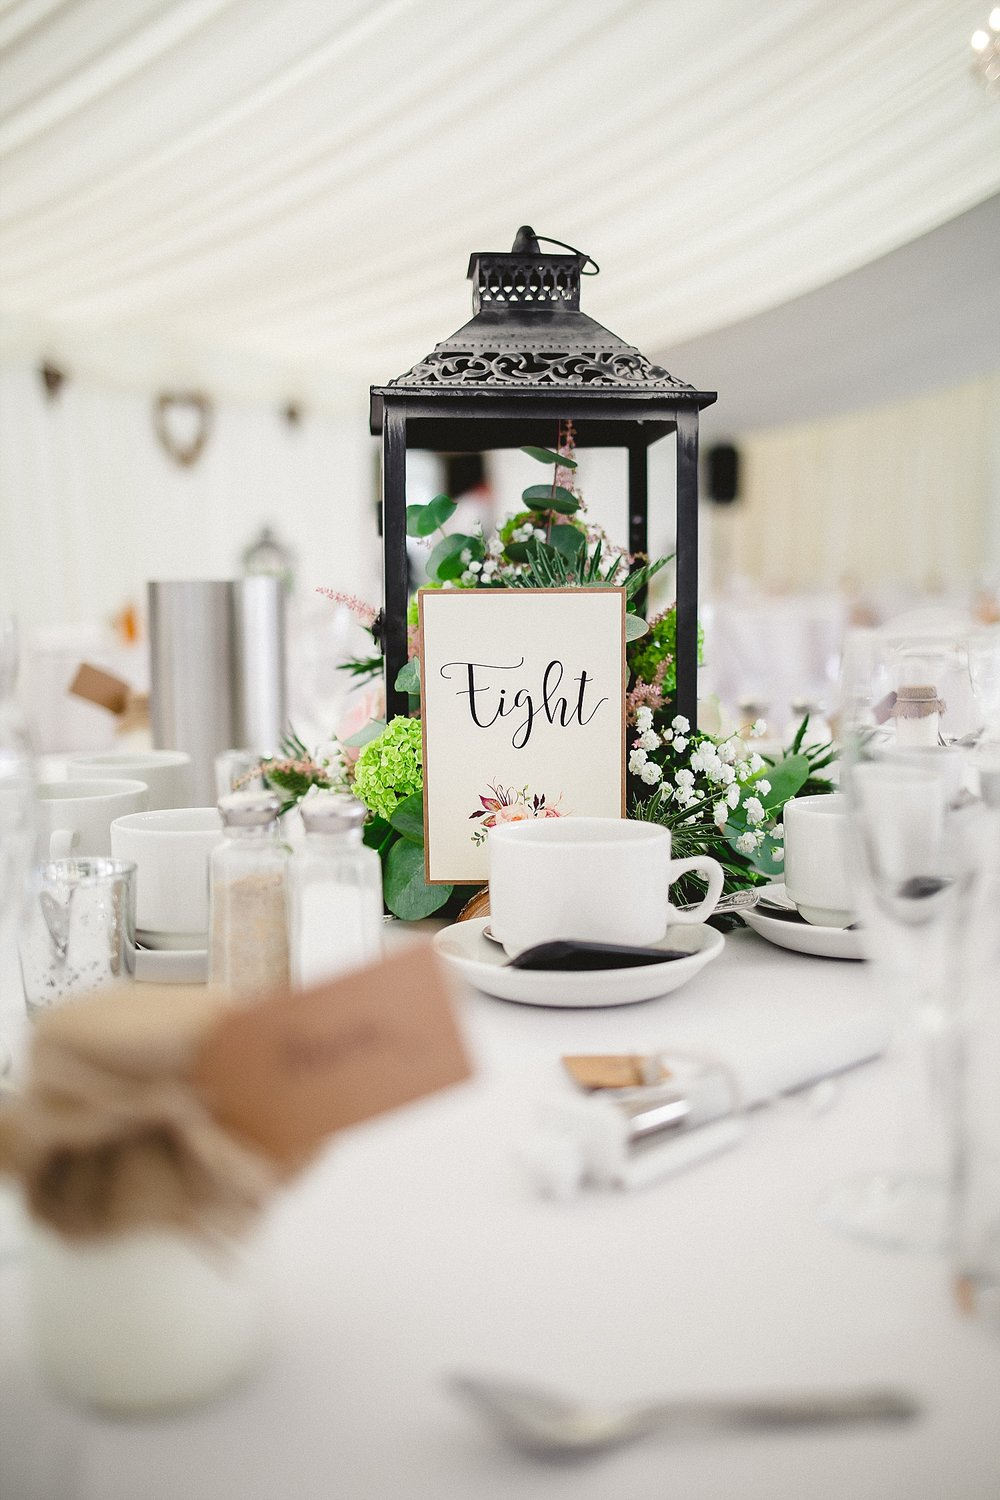 Moor Hall Wedding Venue - Reception Floral Details - Essex Wedding Photographer